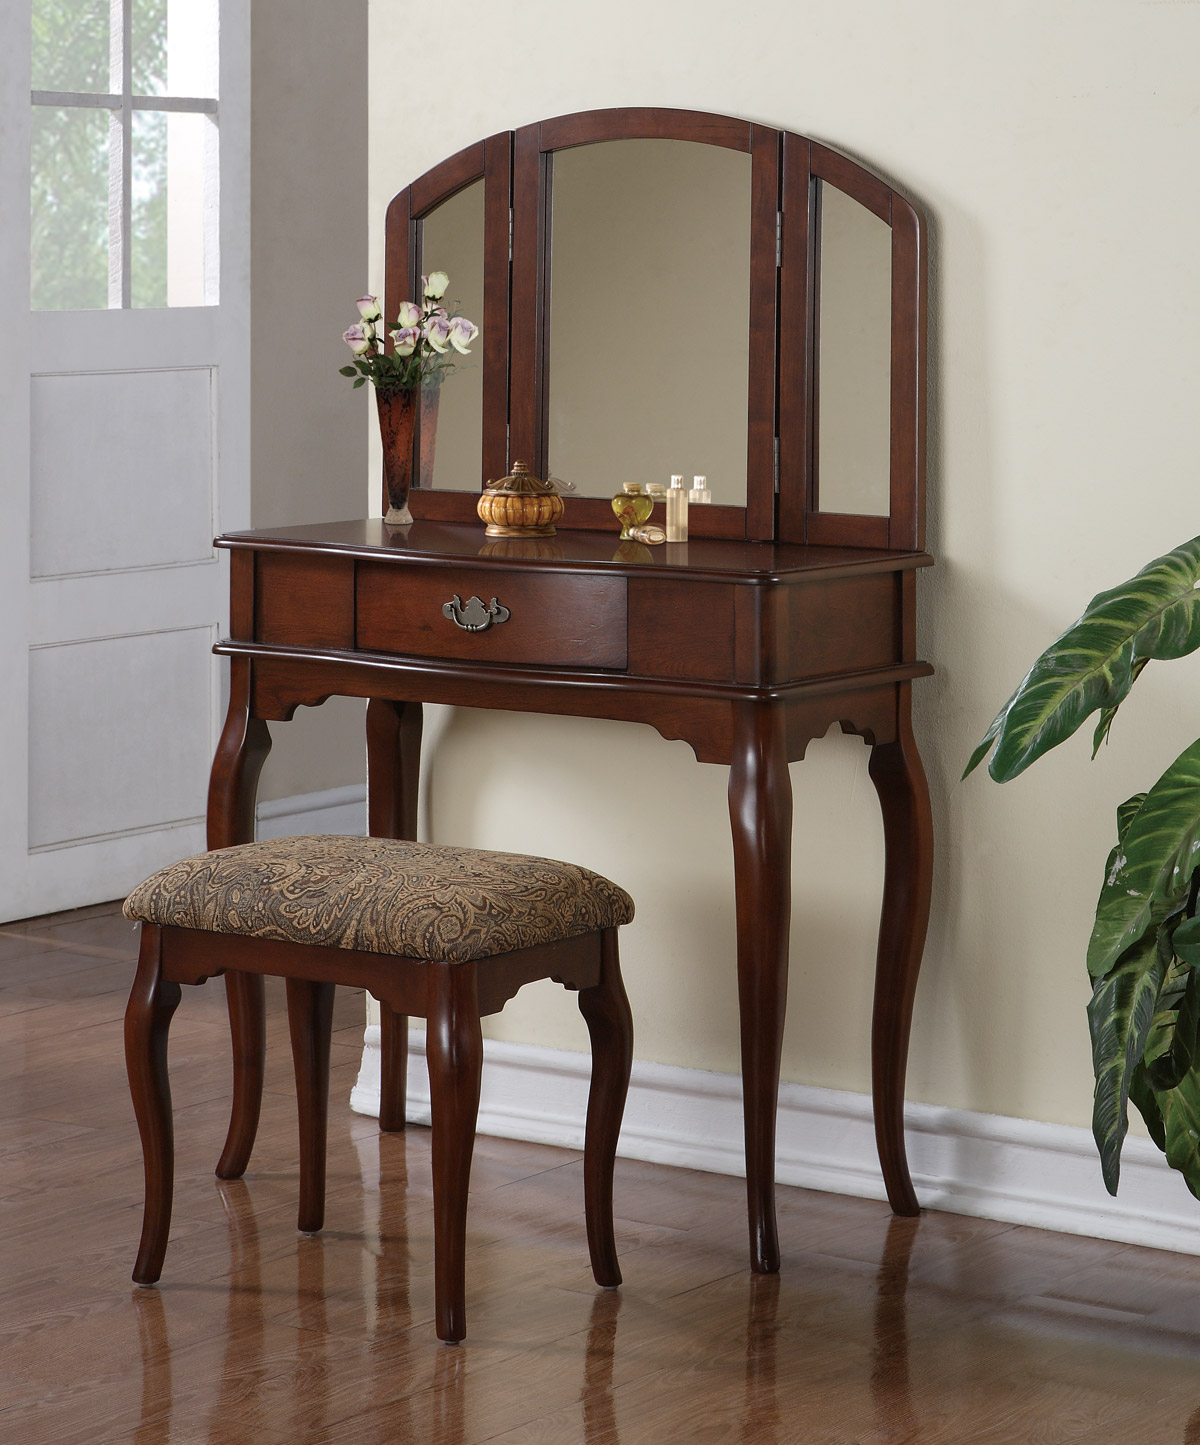 Triple Mirror Cherry Vanity Set With Pattern Upholstered Stool